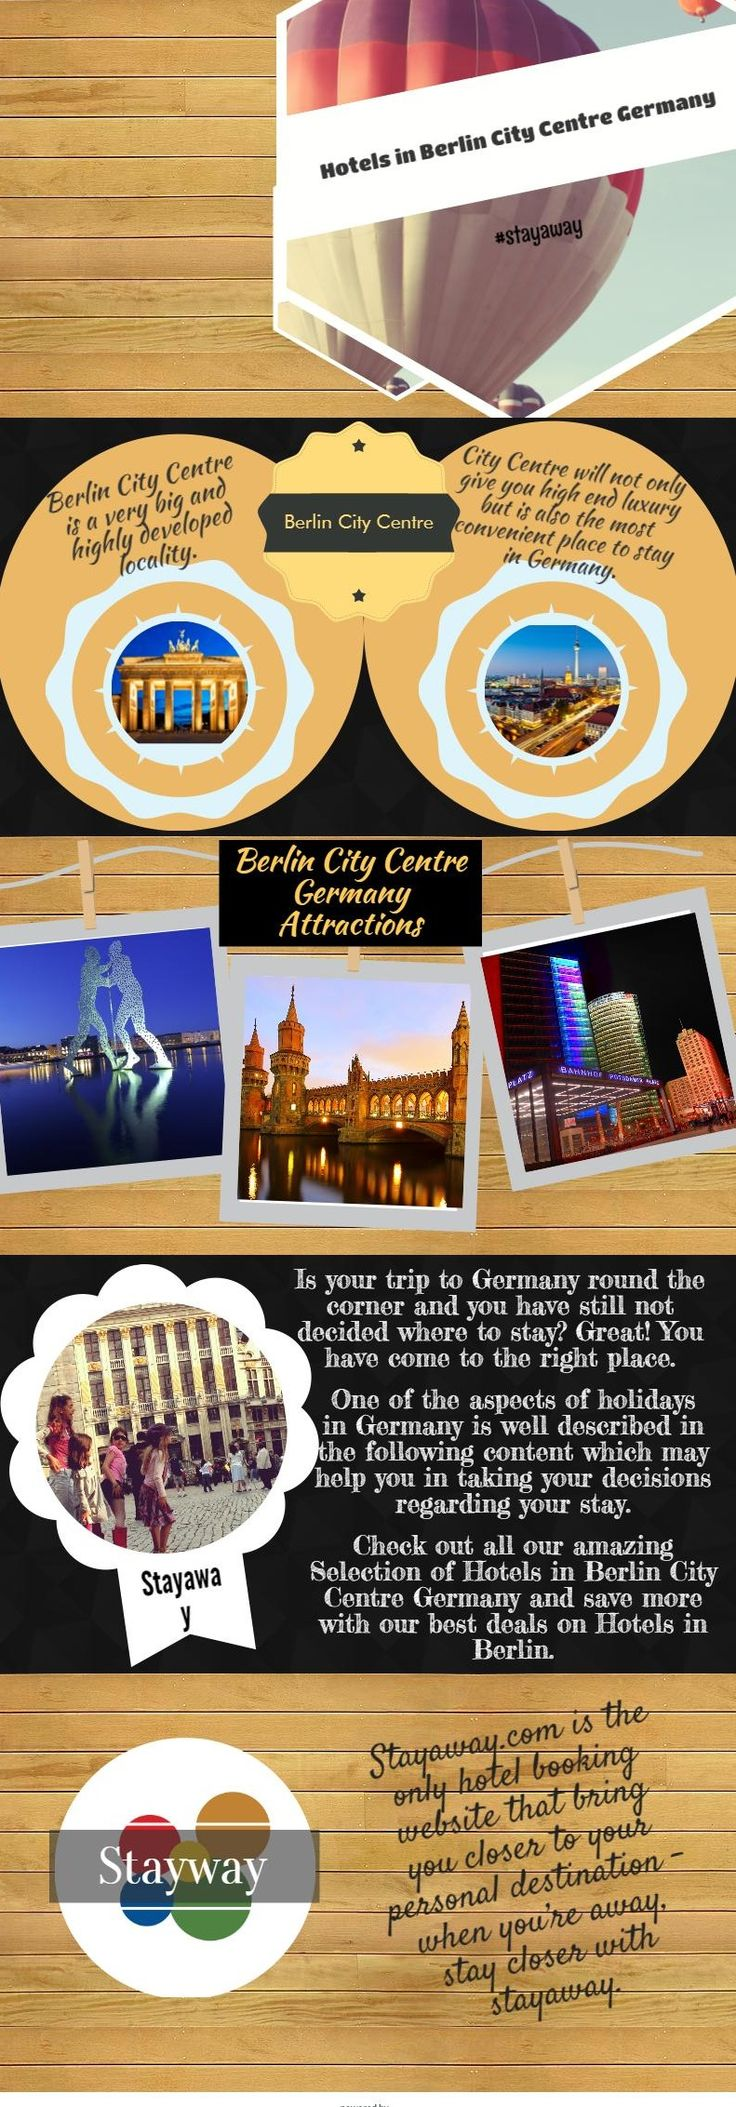 #BerlinCityCentre is the Huge developed city.Enjoy your vacation in Berlin with #family and #friends by booking hotels online near to your destination through stayaway.com. #stayvacation #fun #adventurous #holiday. #billigehotelsberlin #HotelsinBerlinOhio #youth hostel in berlin